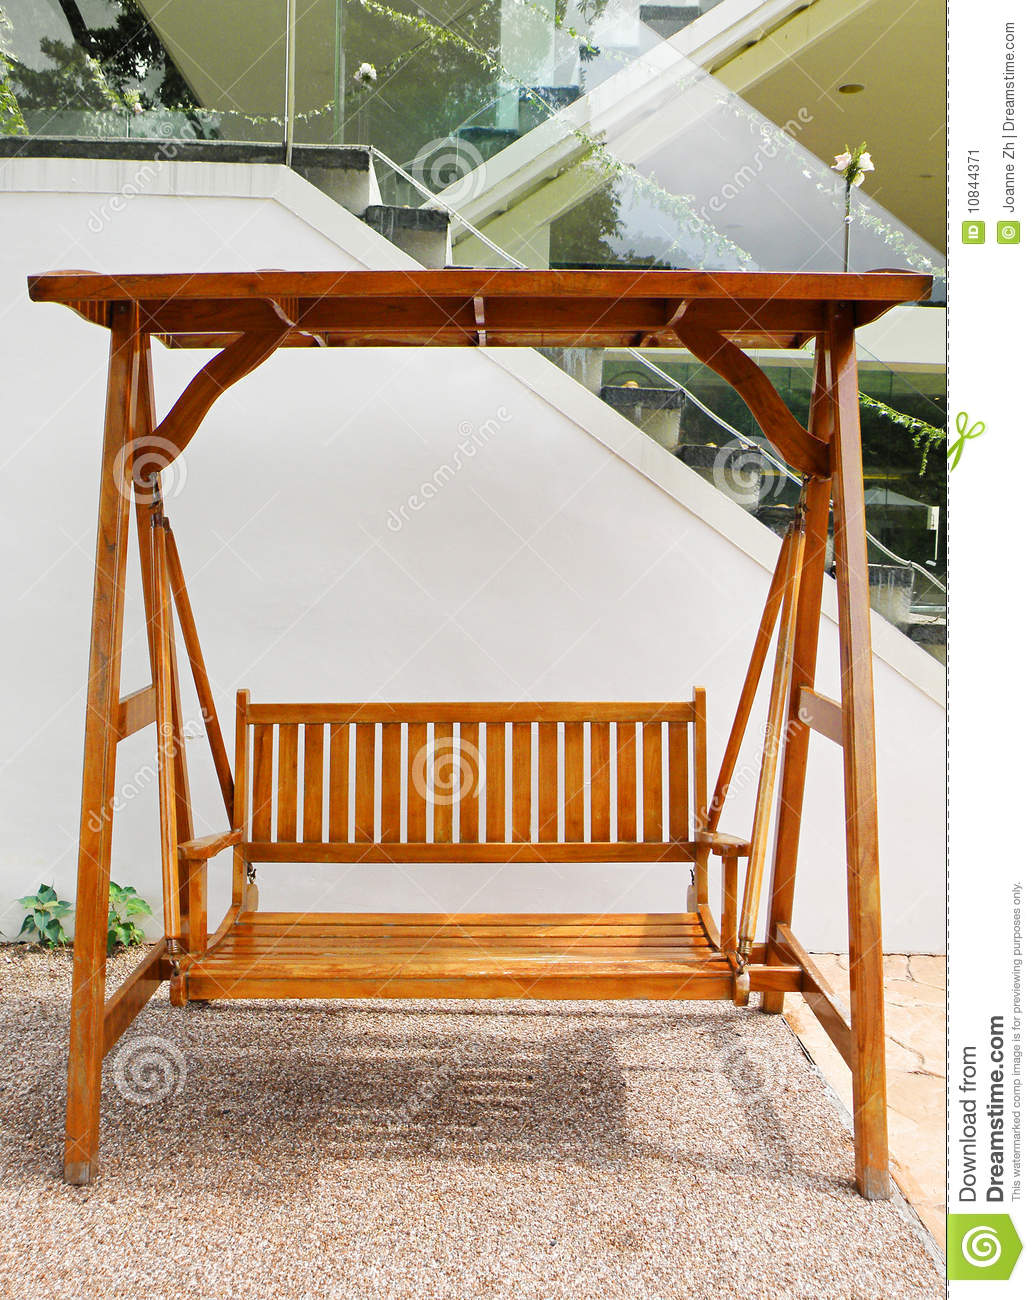 Wooden Swing With Double Seat Outdoors Stock Image Image 10844371